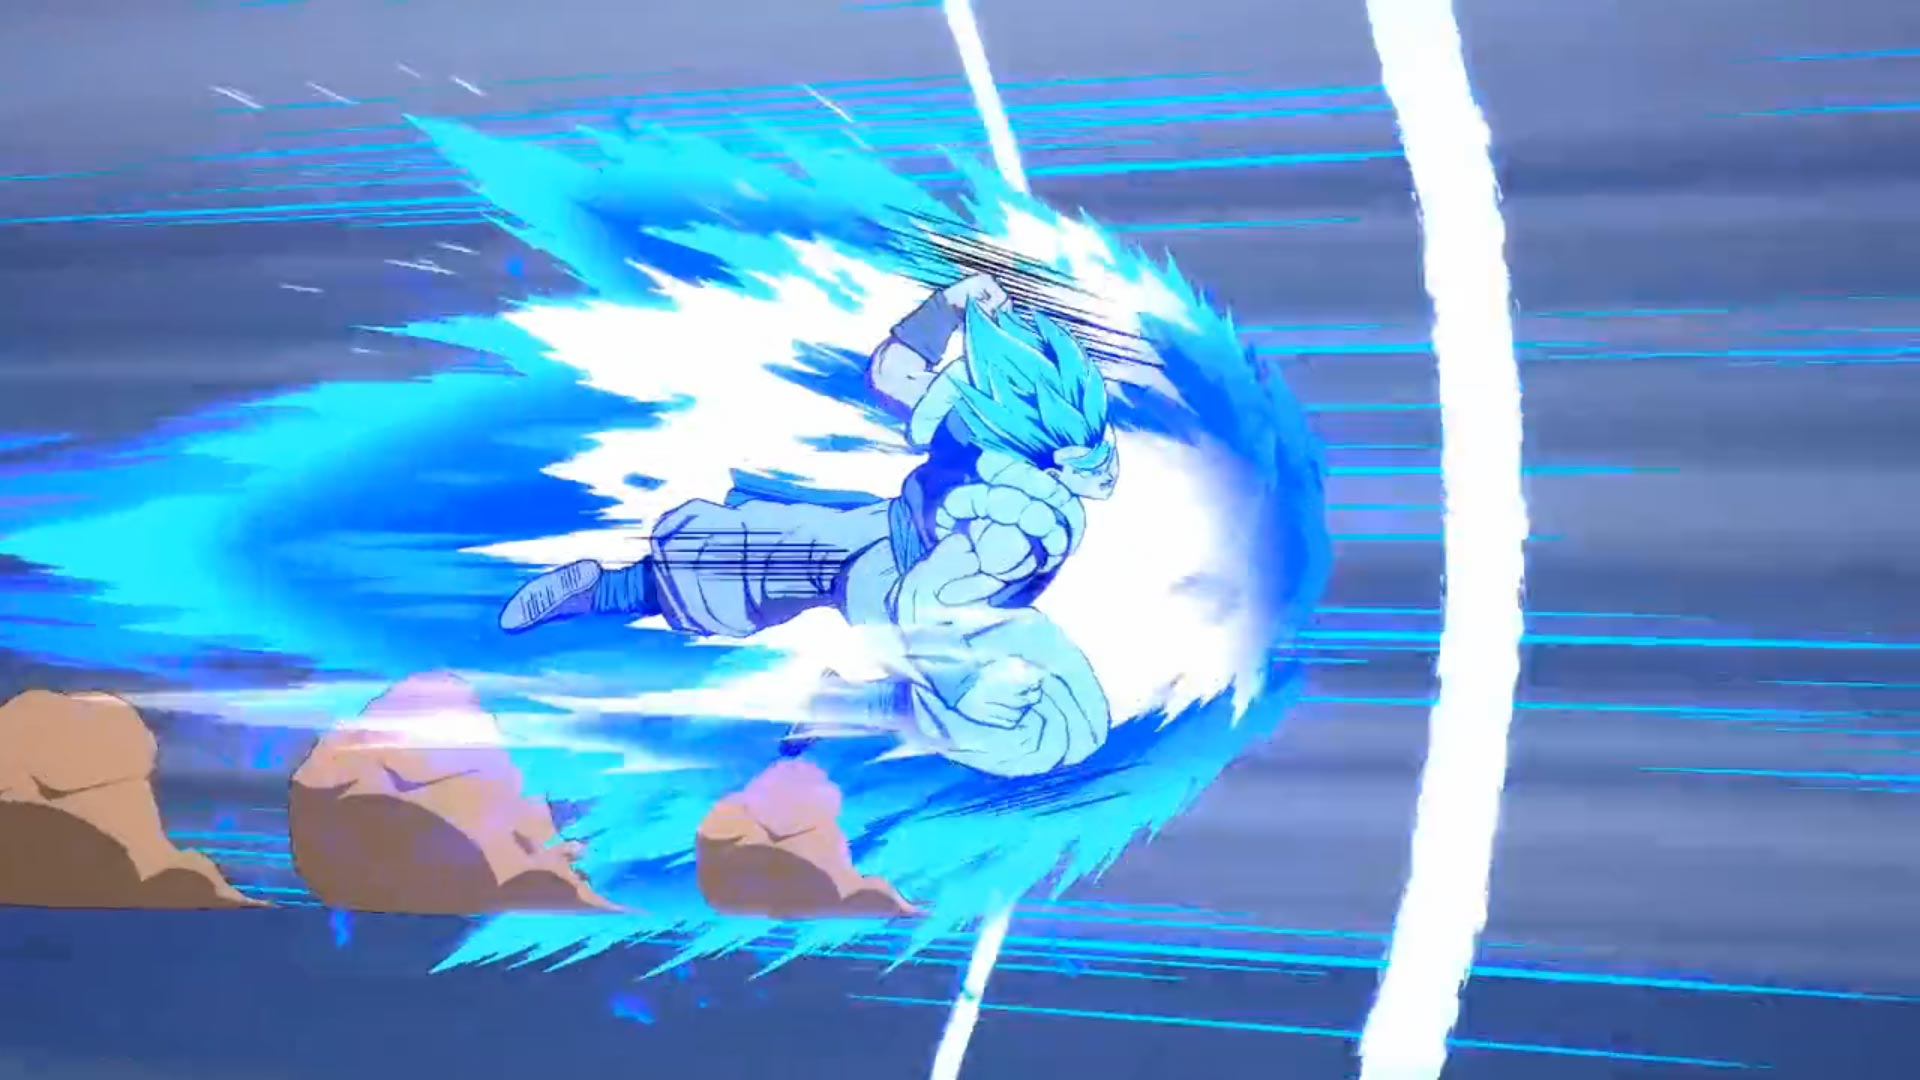 Janemba and Super Saiyan Blue Gogeta Dragon Ball FighterZ gallery 12 out of 12 image gallery